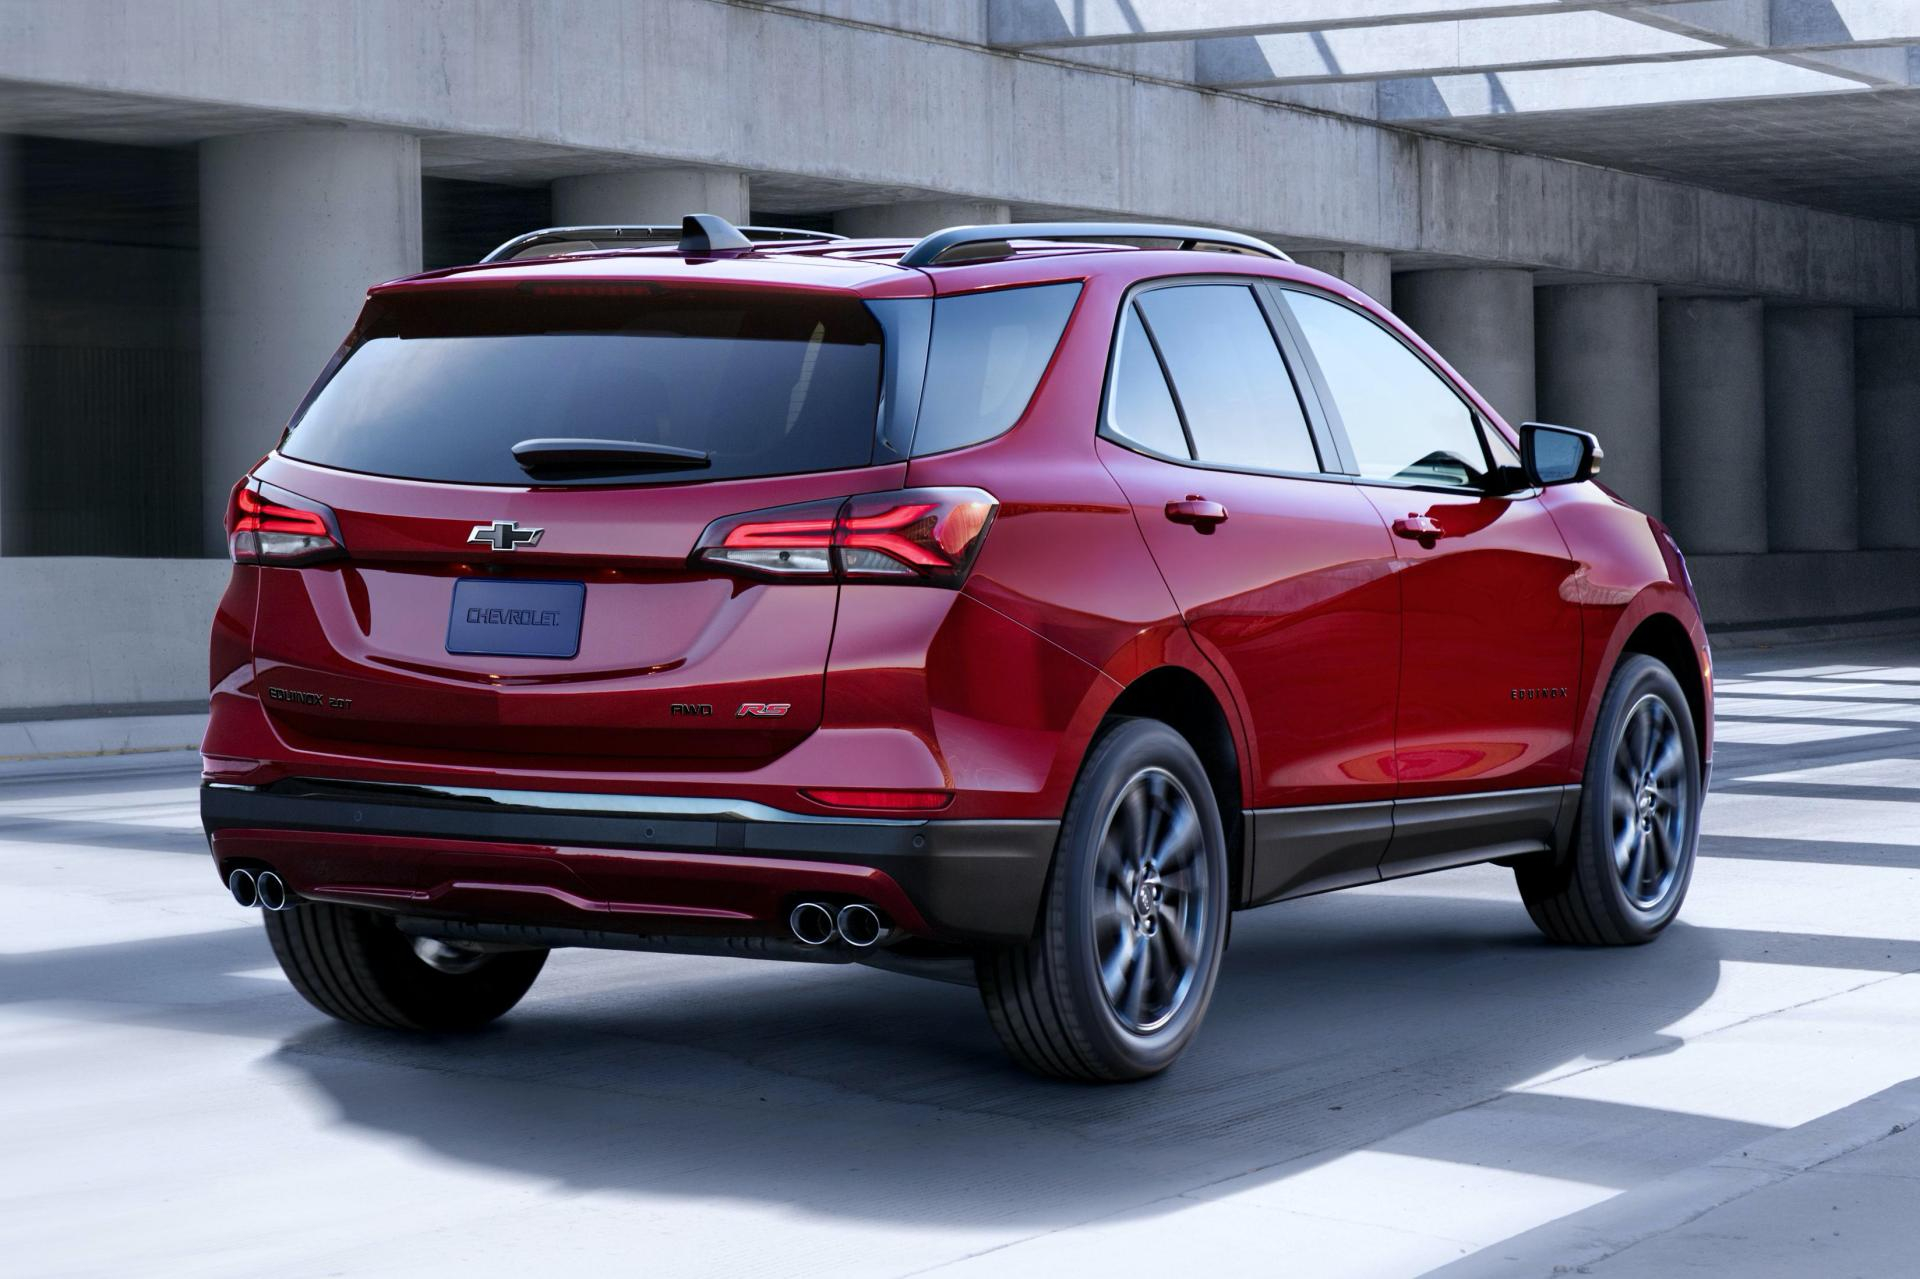 Chevy Gives 2021 Equinox Suv A New Face Along With Rs Trim Does The 2021 Chevy Equinox Have Navigation